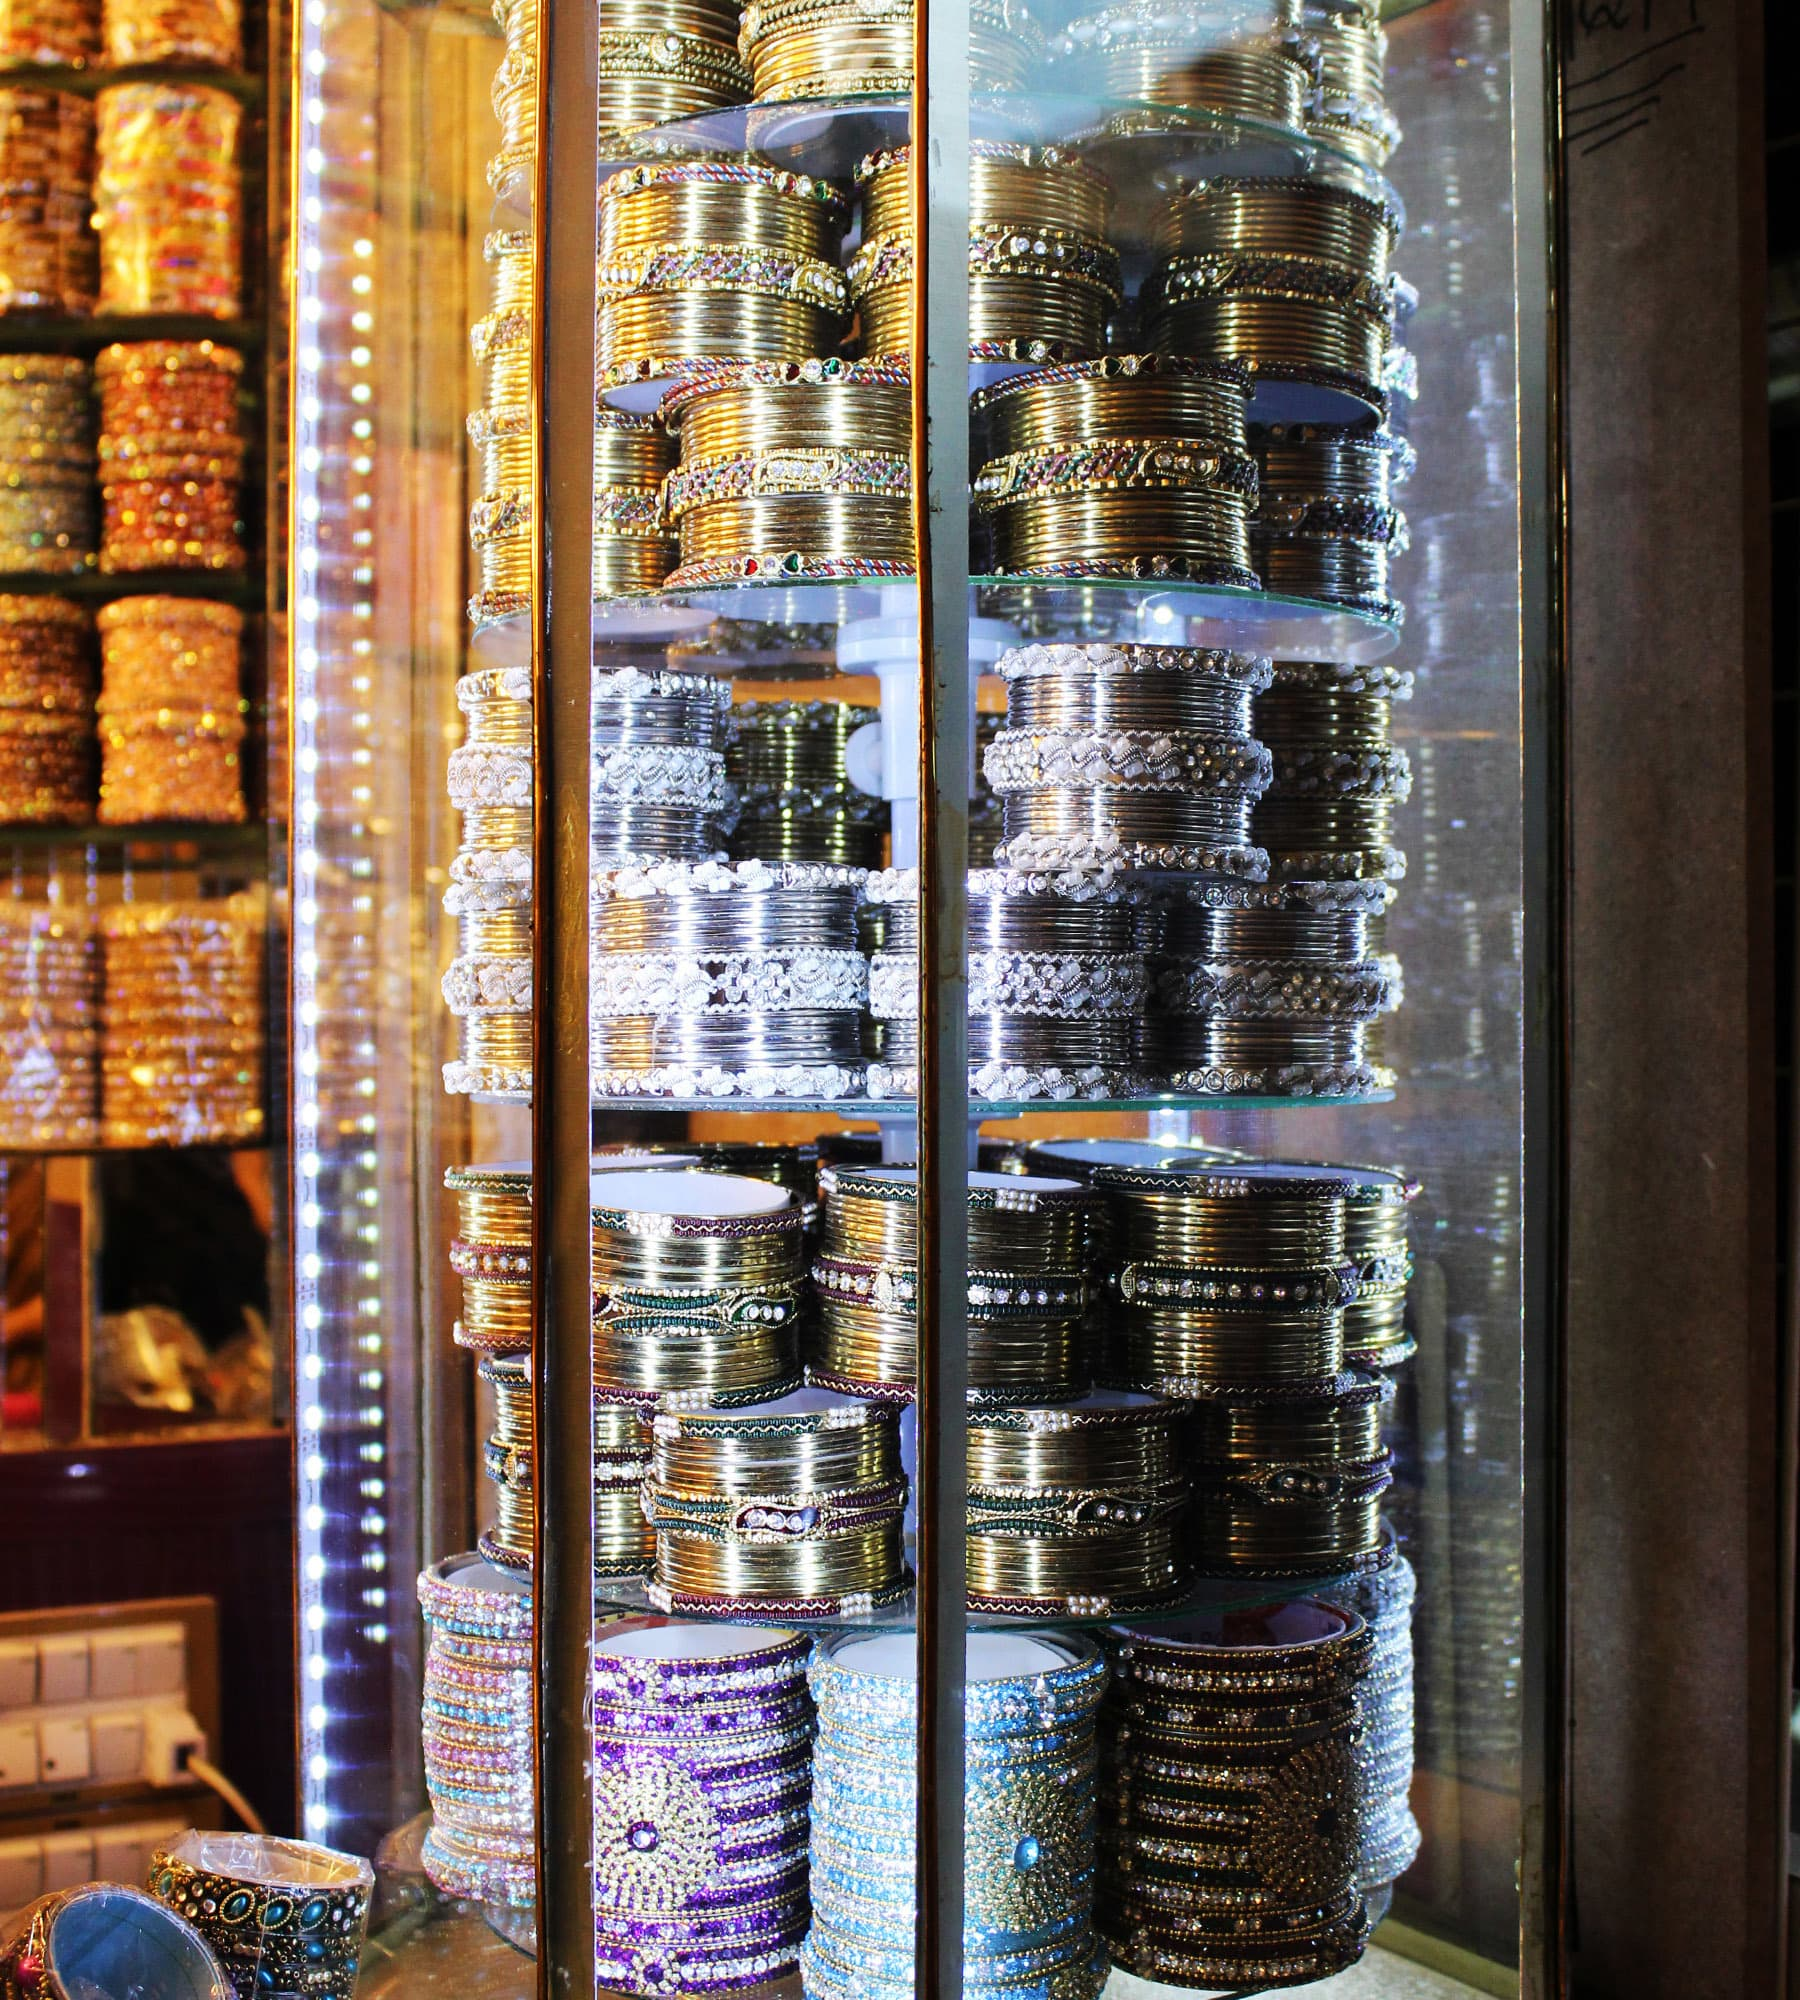 Some of the most traditionally designed choorian can also be purchased from Meena Bazaar.